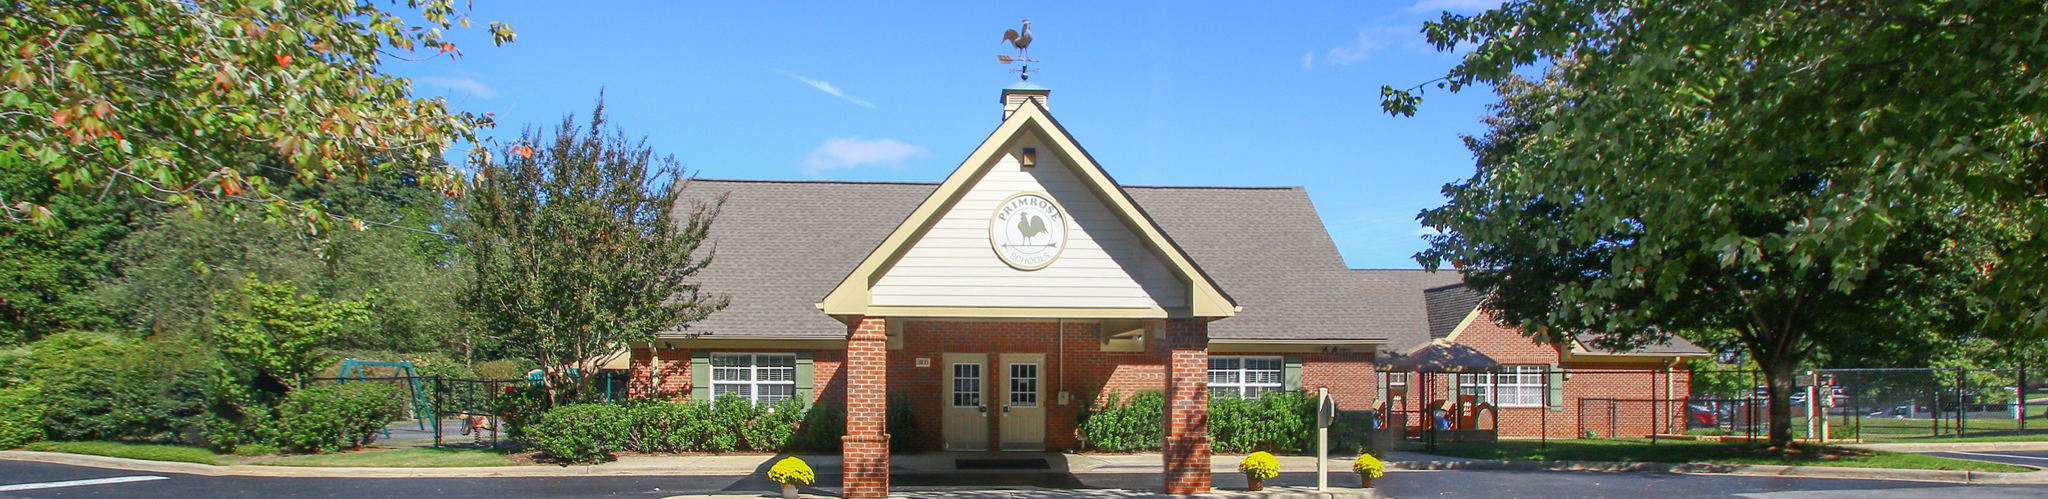 Exterior of a Primrose School of Brassfield